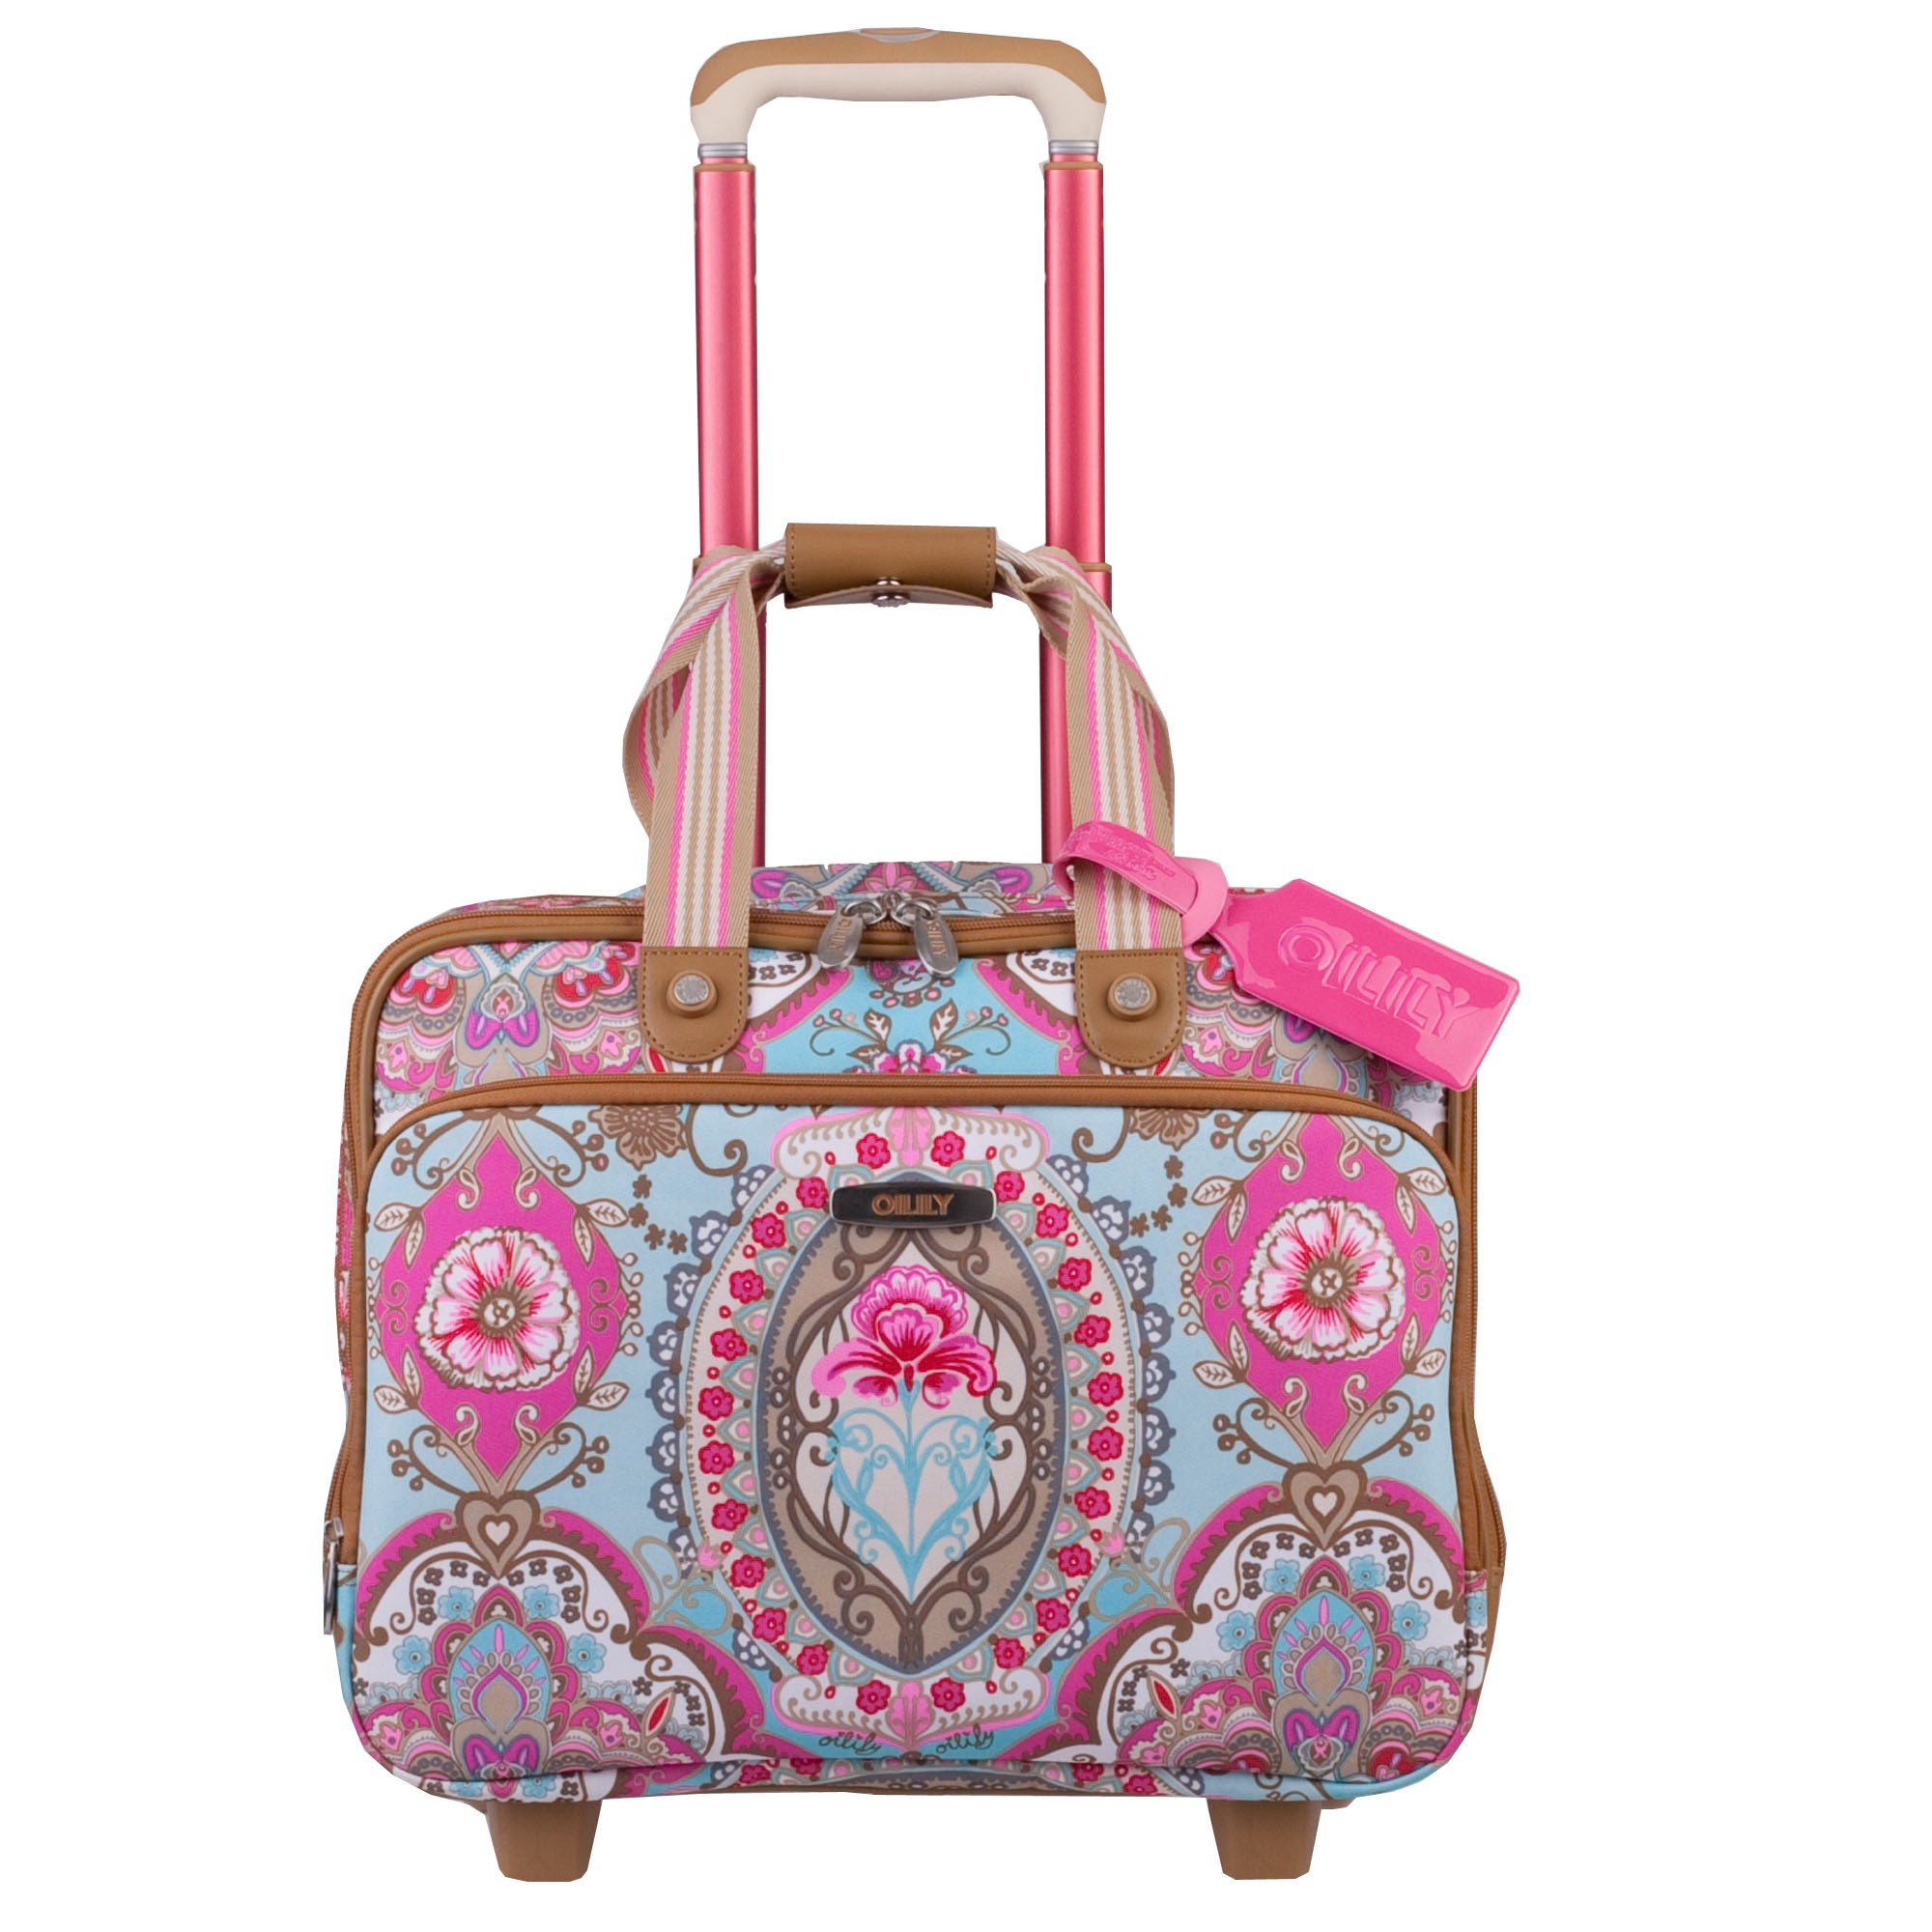 Oilily Travel Office Bag On Wheels